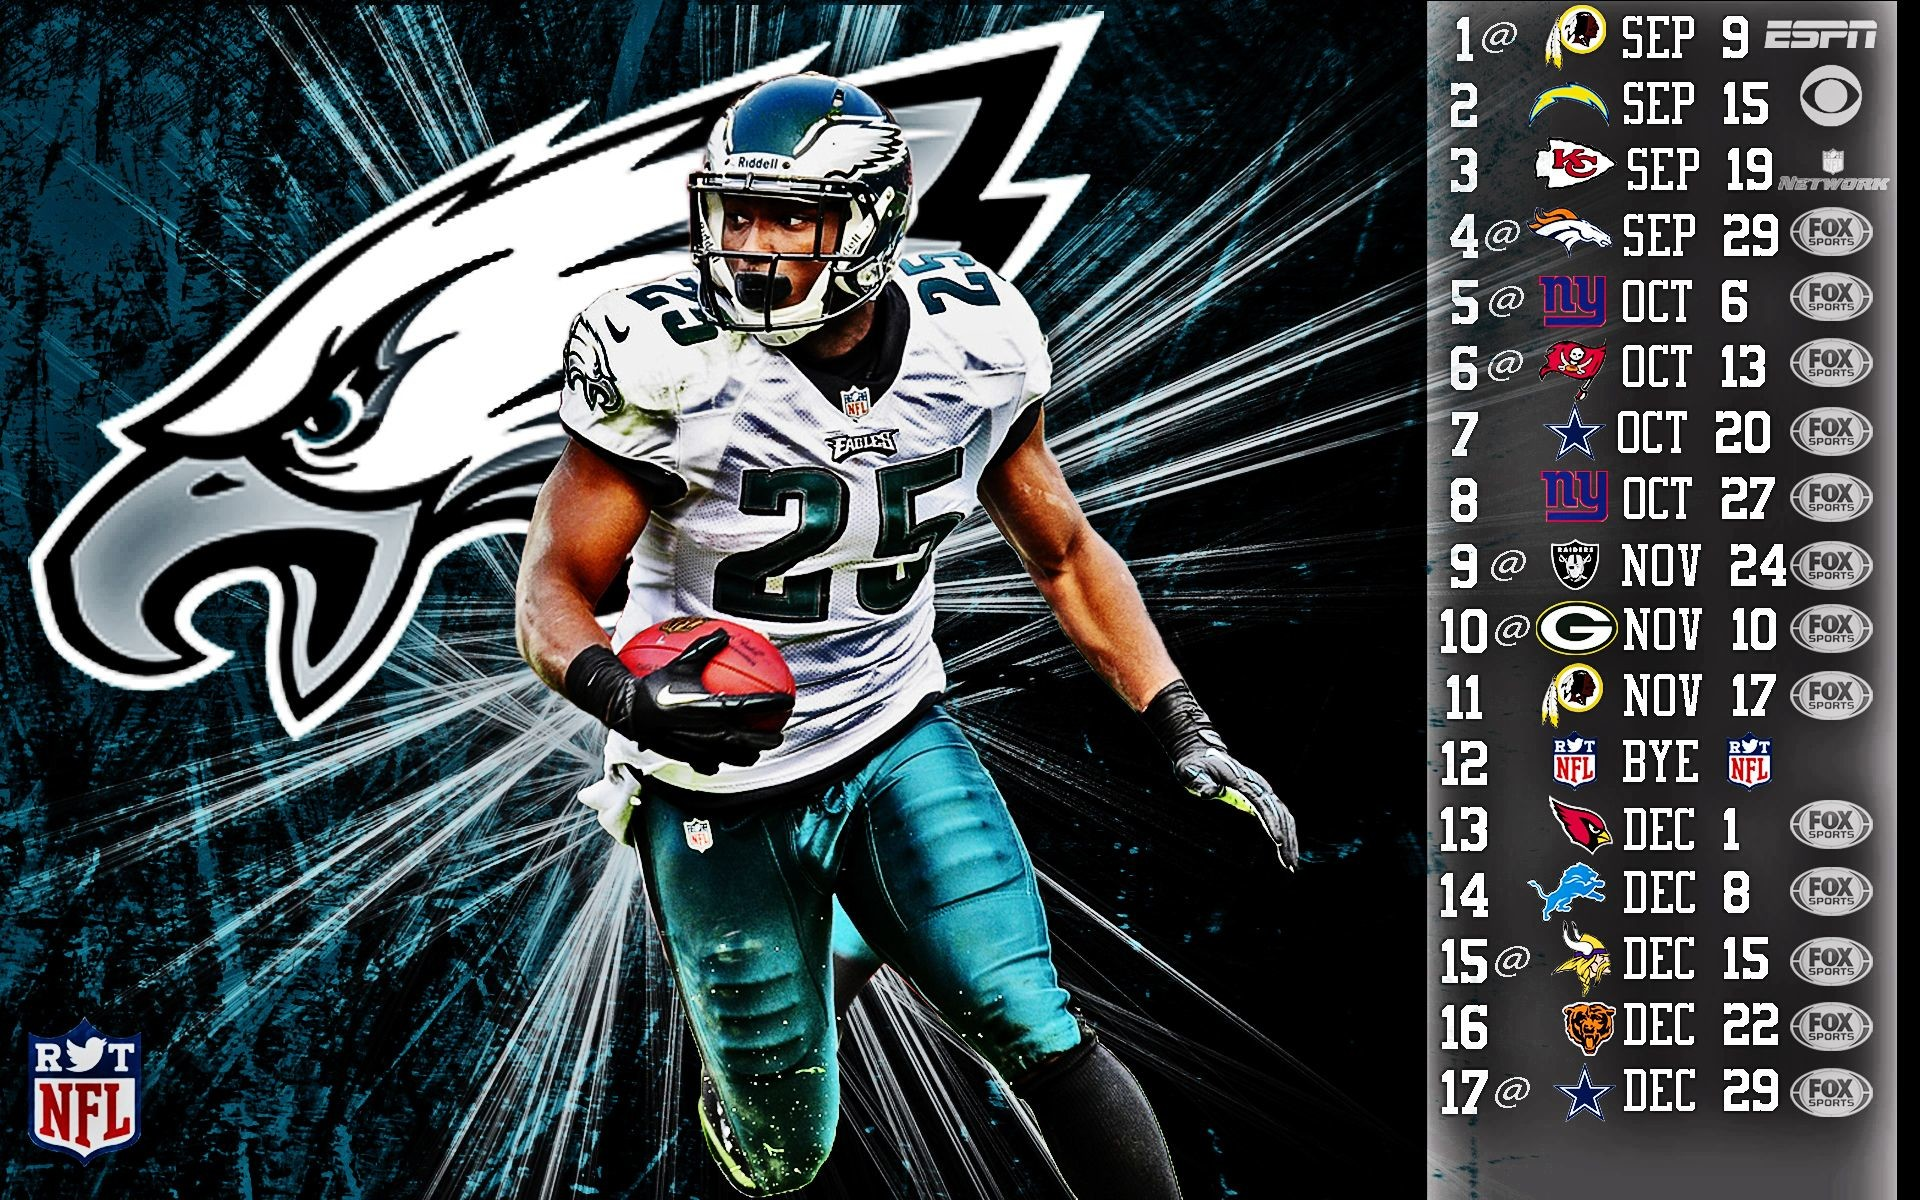 1920x1200 philadelphia eagles images for desktop background, Skipper Leapman